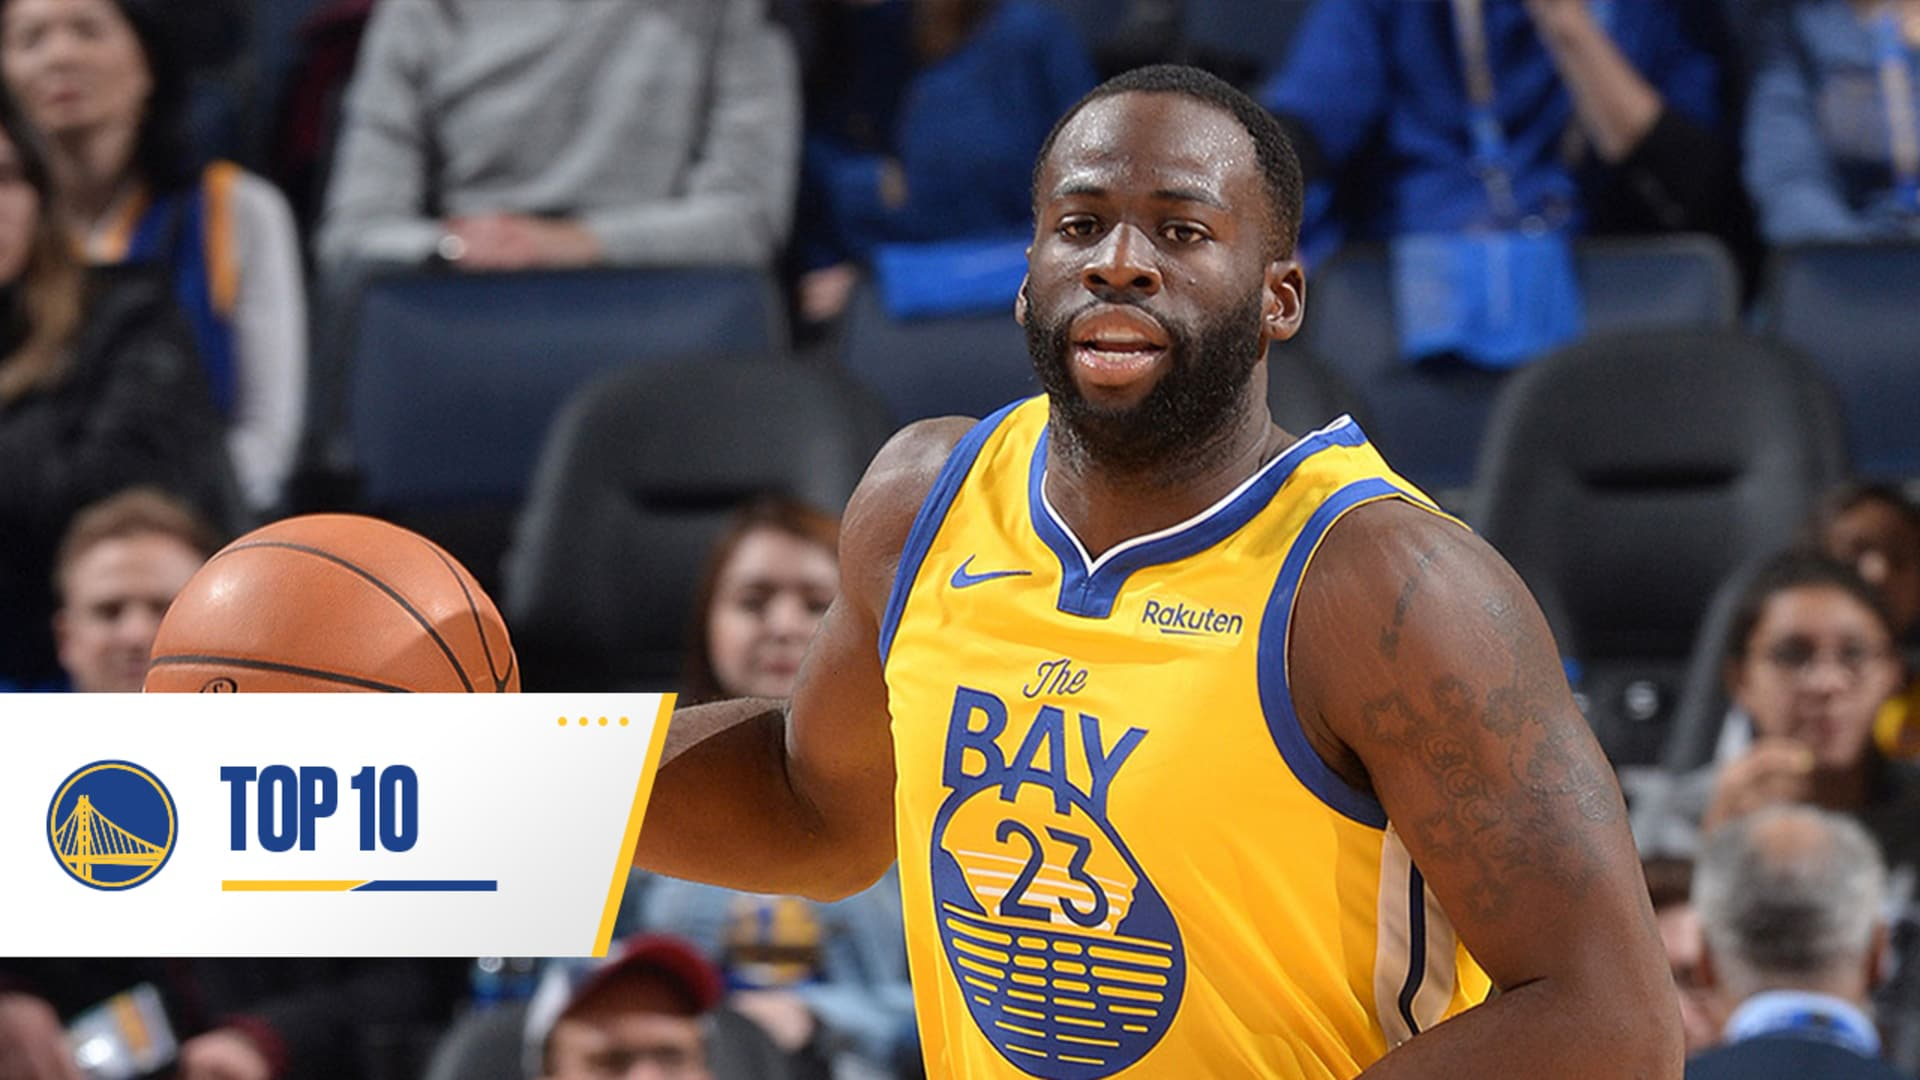 Draymond Green's Top 10 Plays of 2019-20